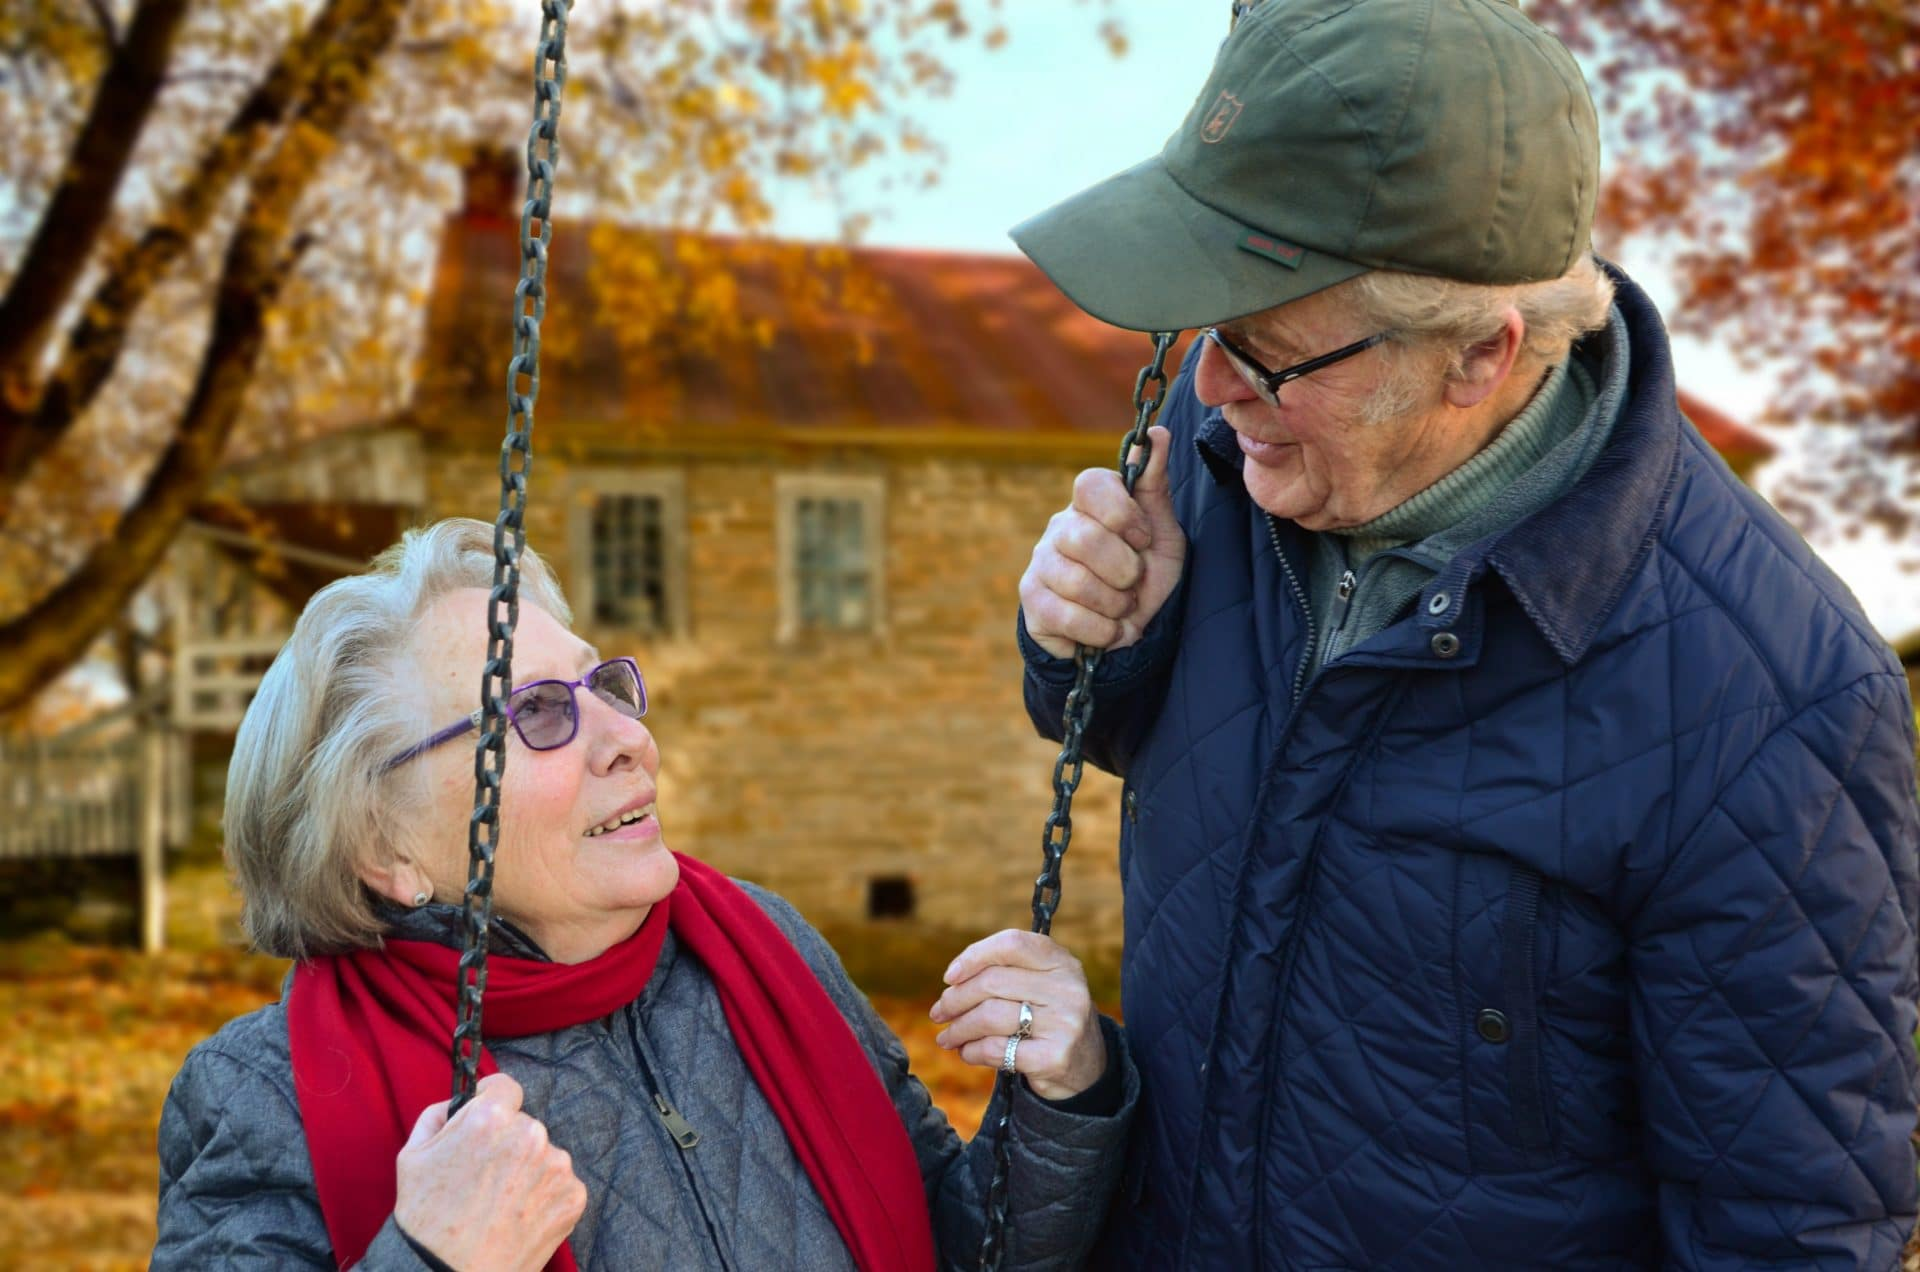 Finance News - New Budget Plan Could Include Retirement Boosts